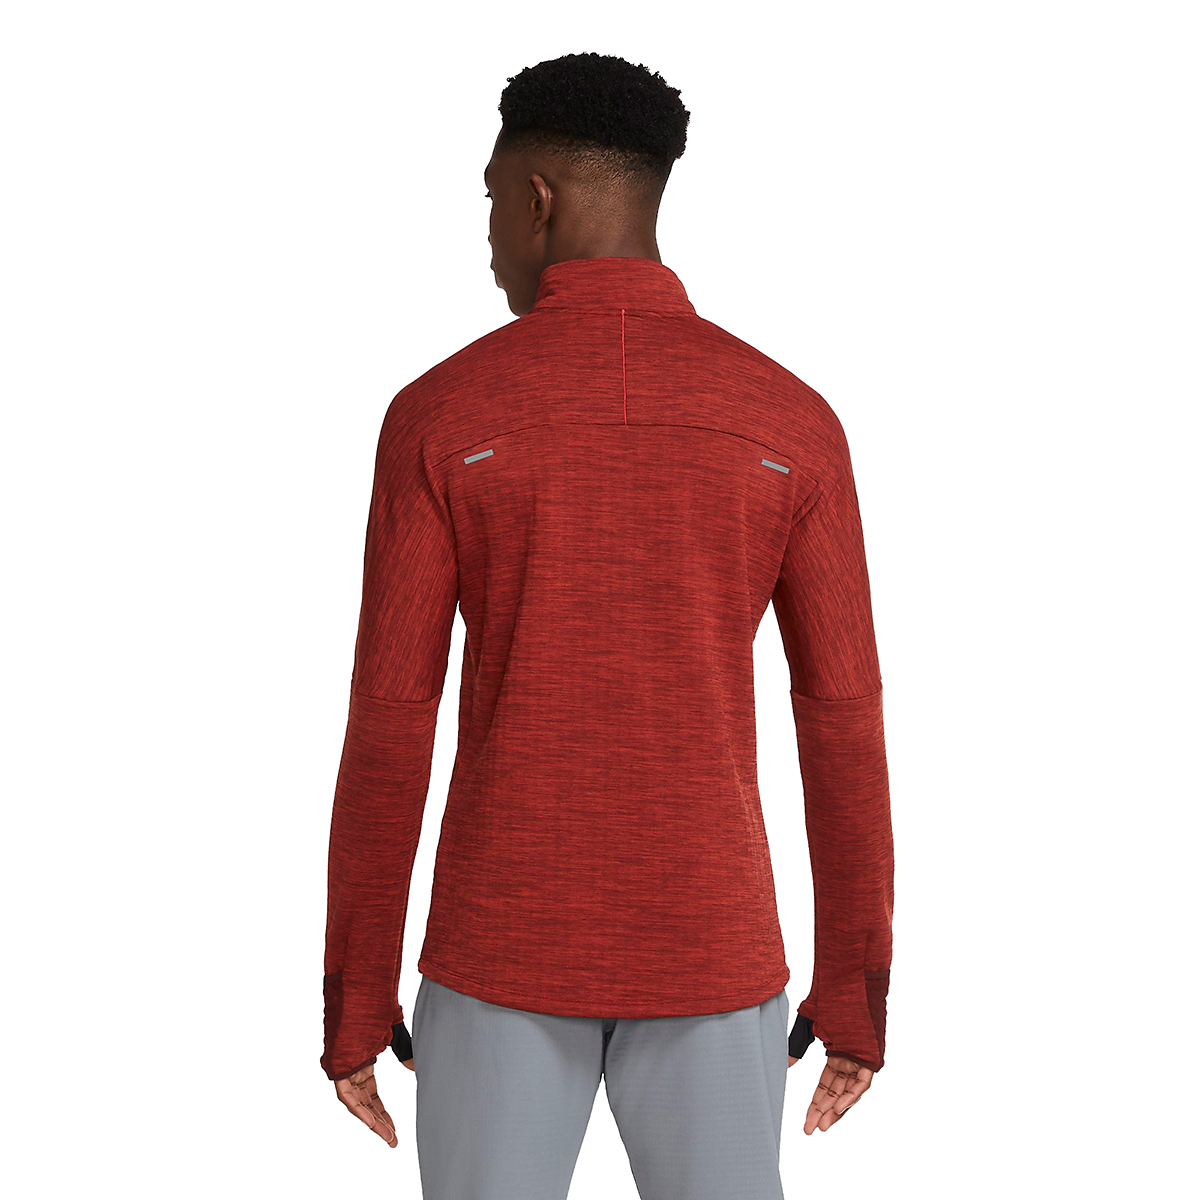 Men's Nike Sphere Half Zip Long Sleeve Shirt - Color: Mystic Dates/Heather/Chile Red - Size: S, Mystic Dates/Heather/Chile Red, large, image 2